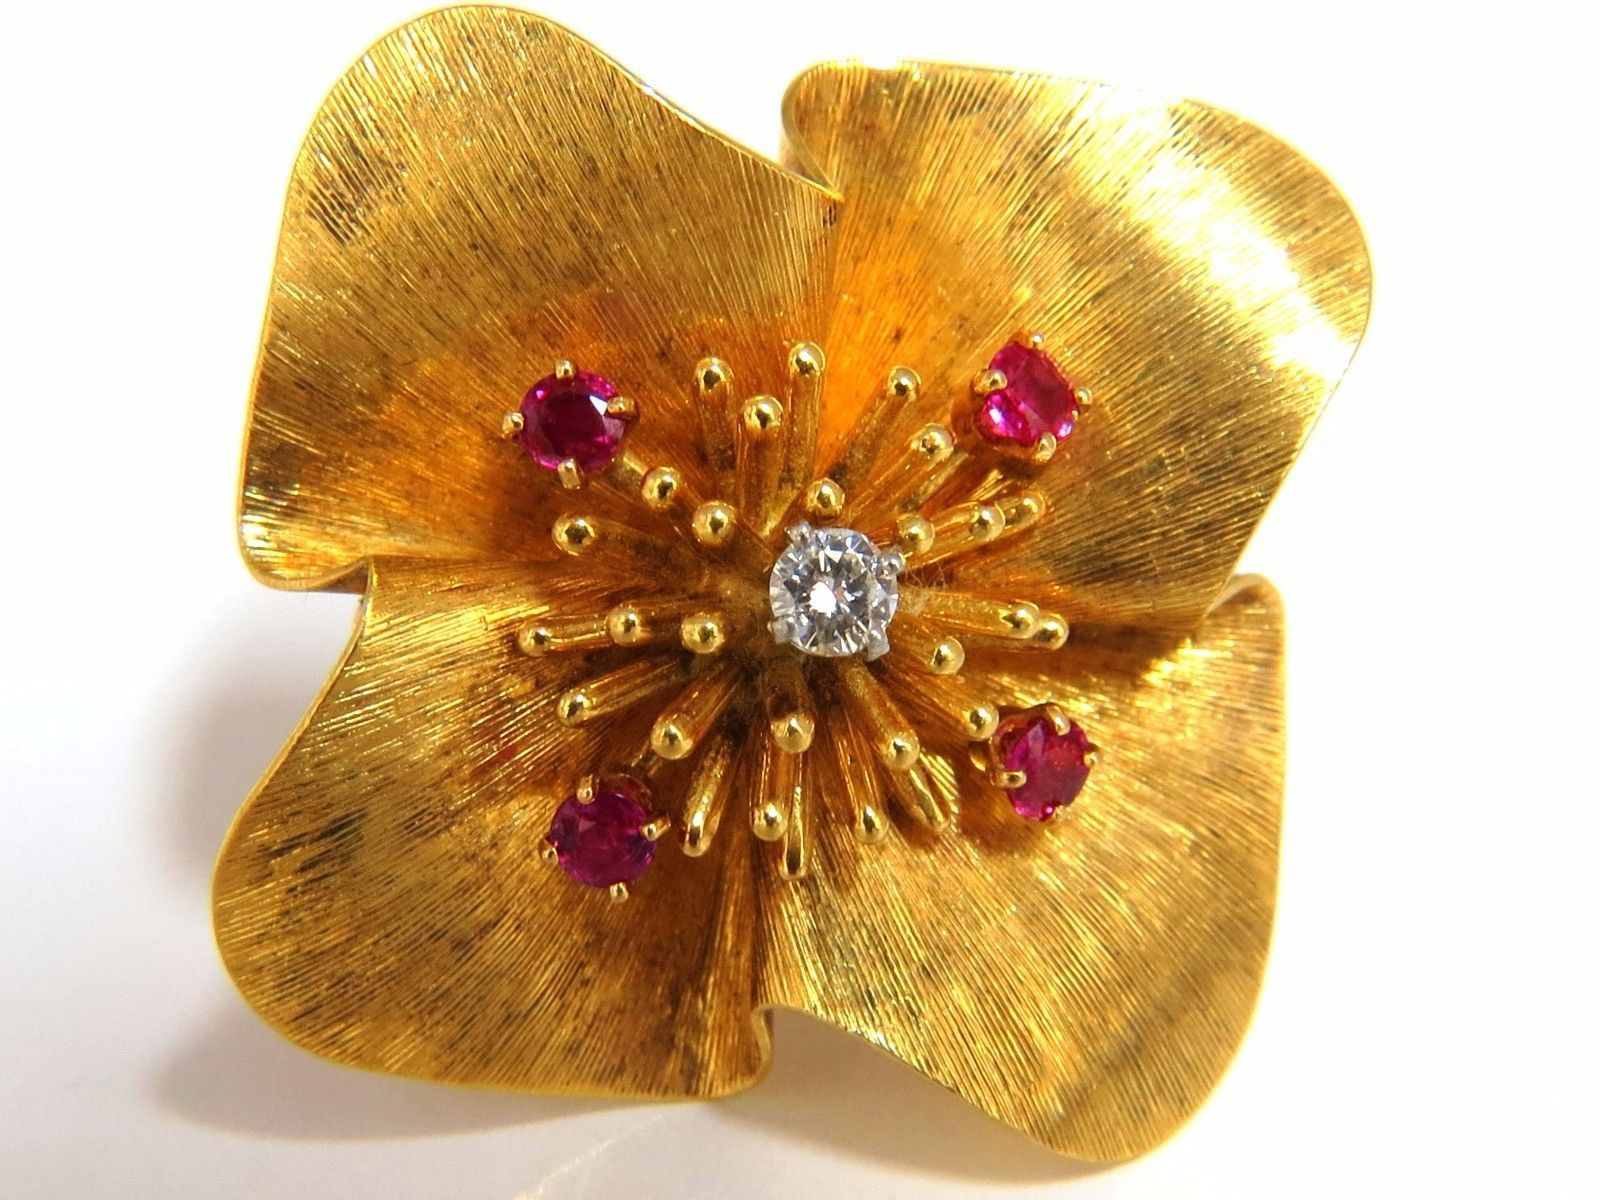 Raised Classic Starburst within petals. .15ct natural diamond. Rounds, Full cut Brilliant. G-color VS-2 clarity. 4 Natural Round Rubies .10ct. 14kt yellow gold intricate brush detail. 17.5 grams. Over